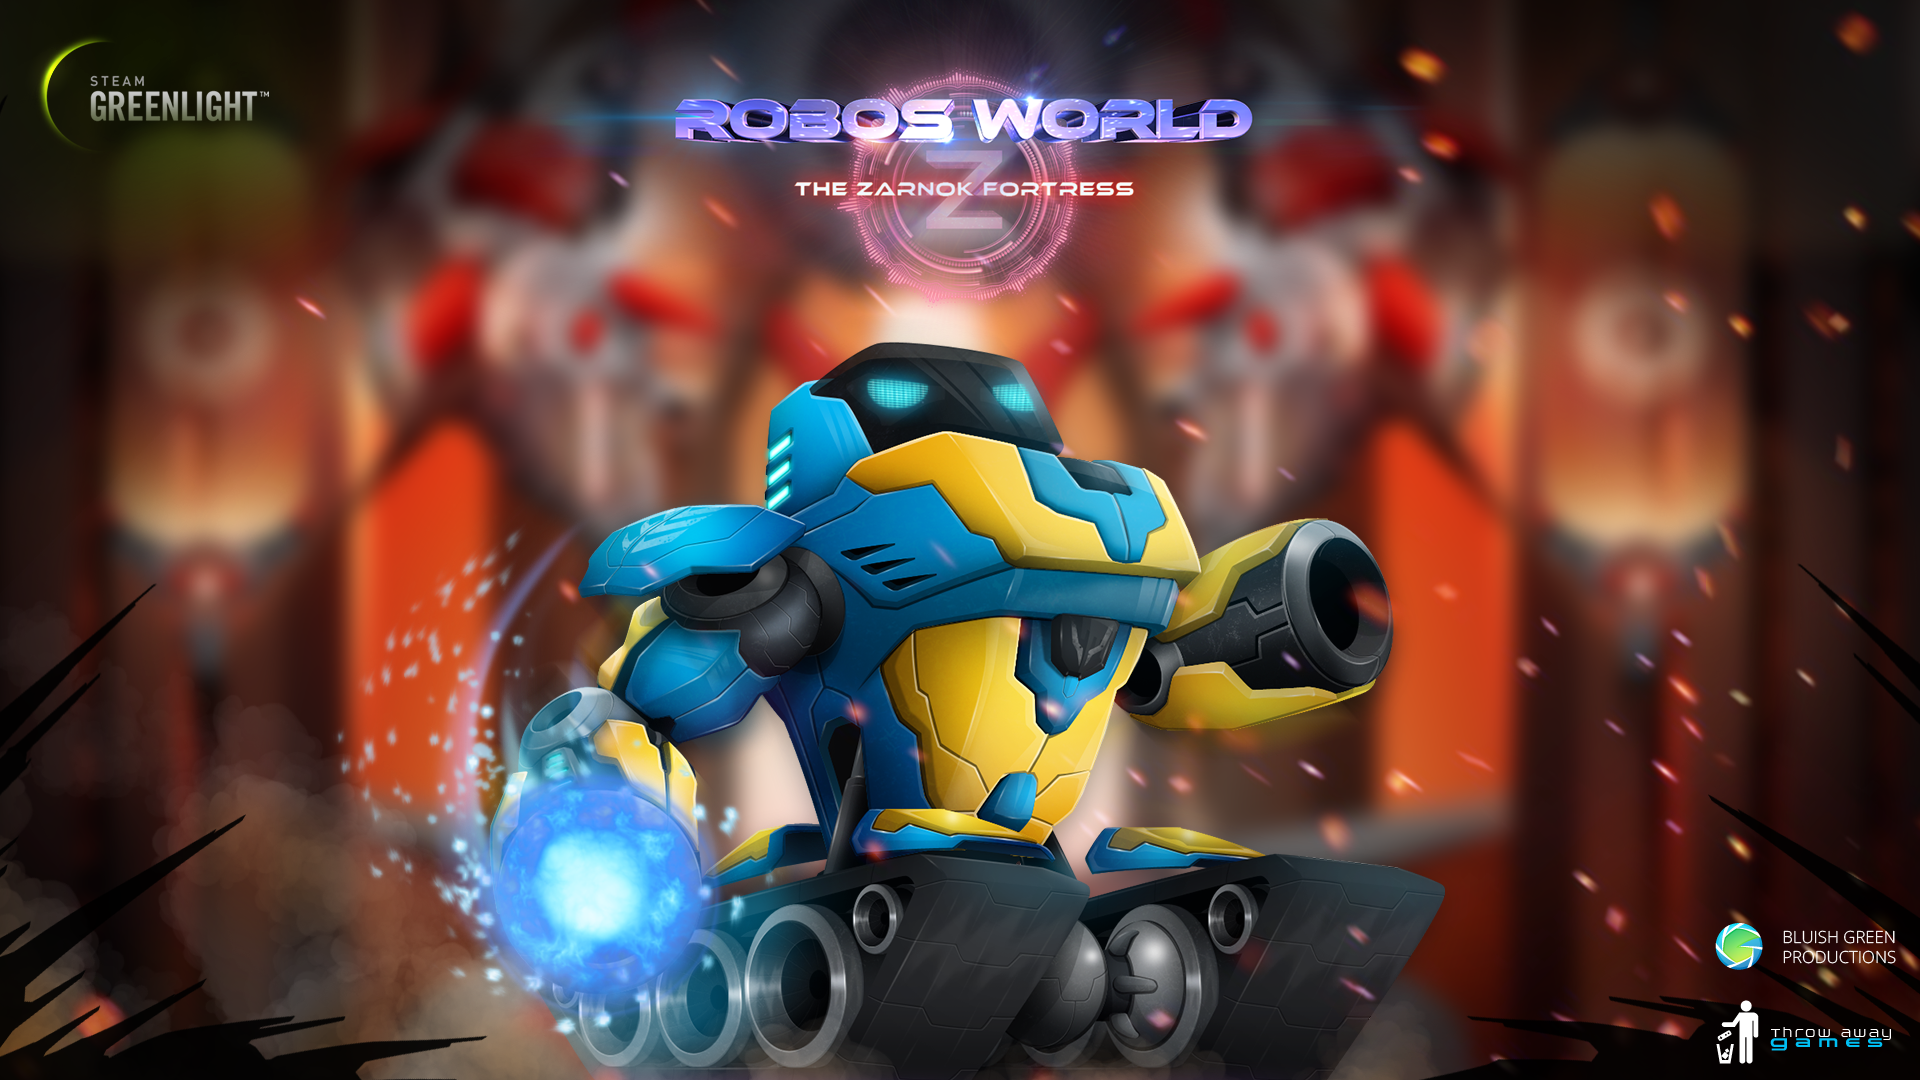 Please YES vote for Robo's World: The Zarnok Fortress on Steam Greenlight!